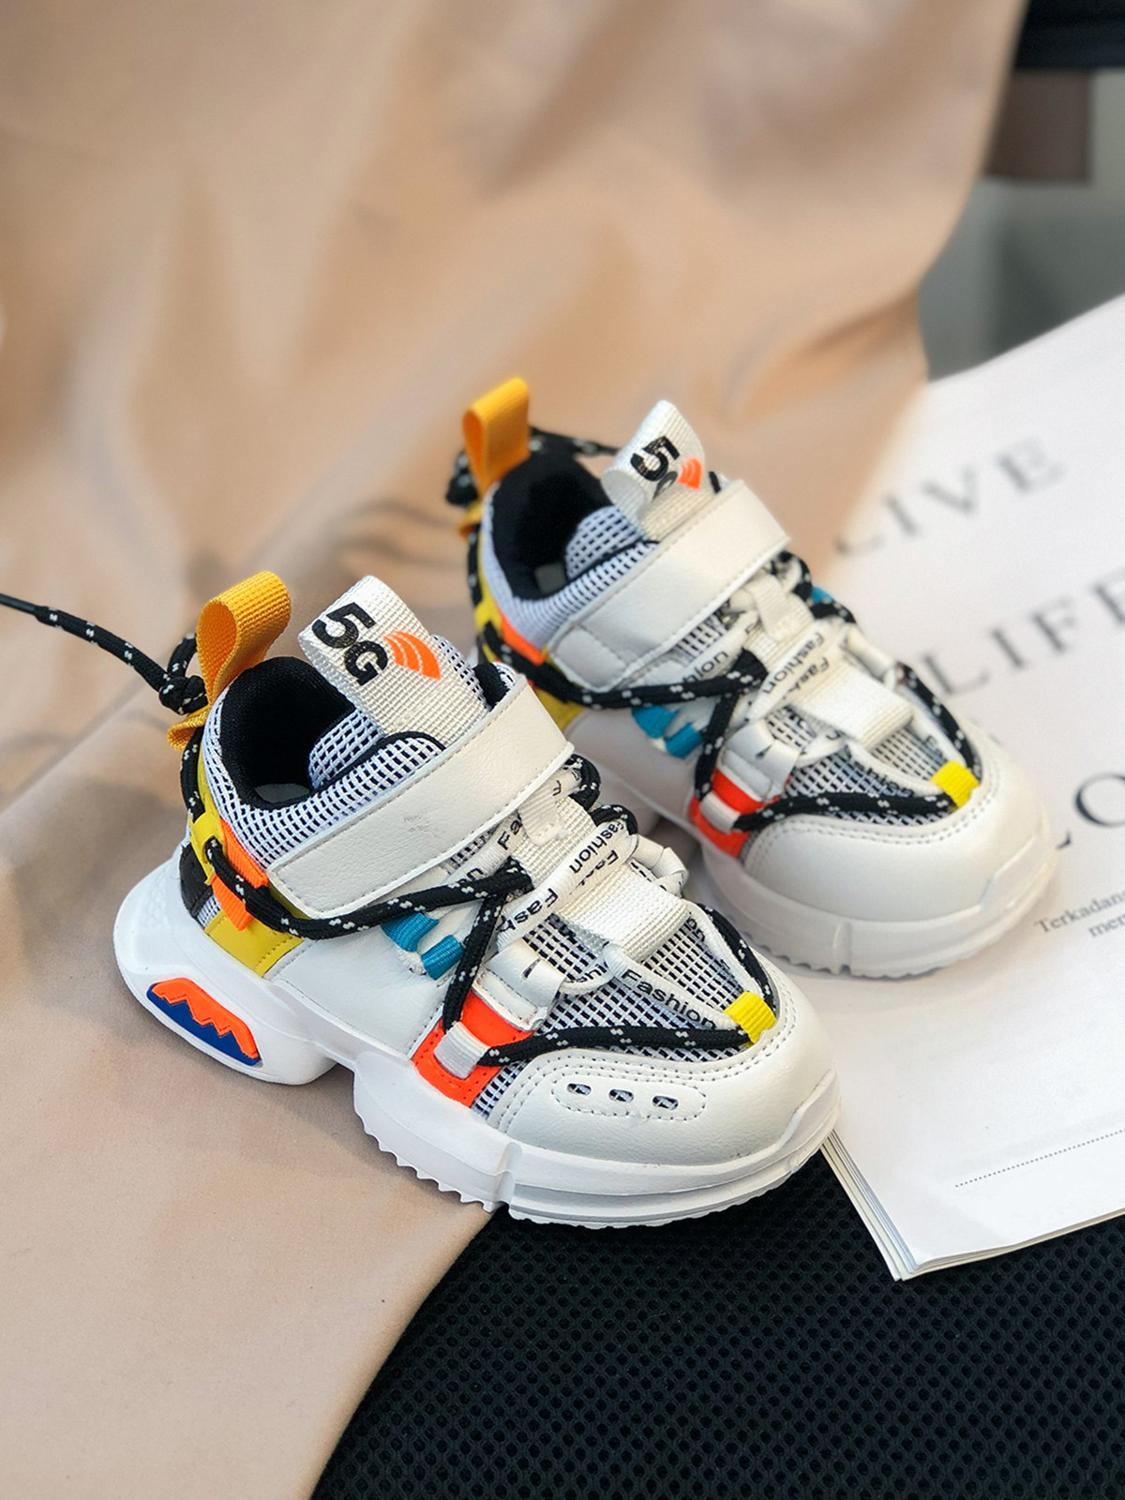 Baby Shoes Boy Sneakers Toddler Girls Children Tennis Breathable Design Little Fashion